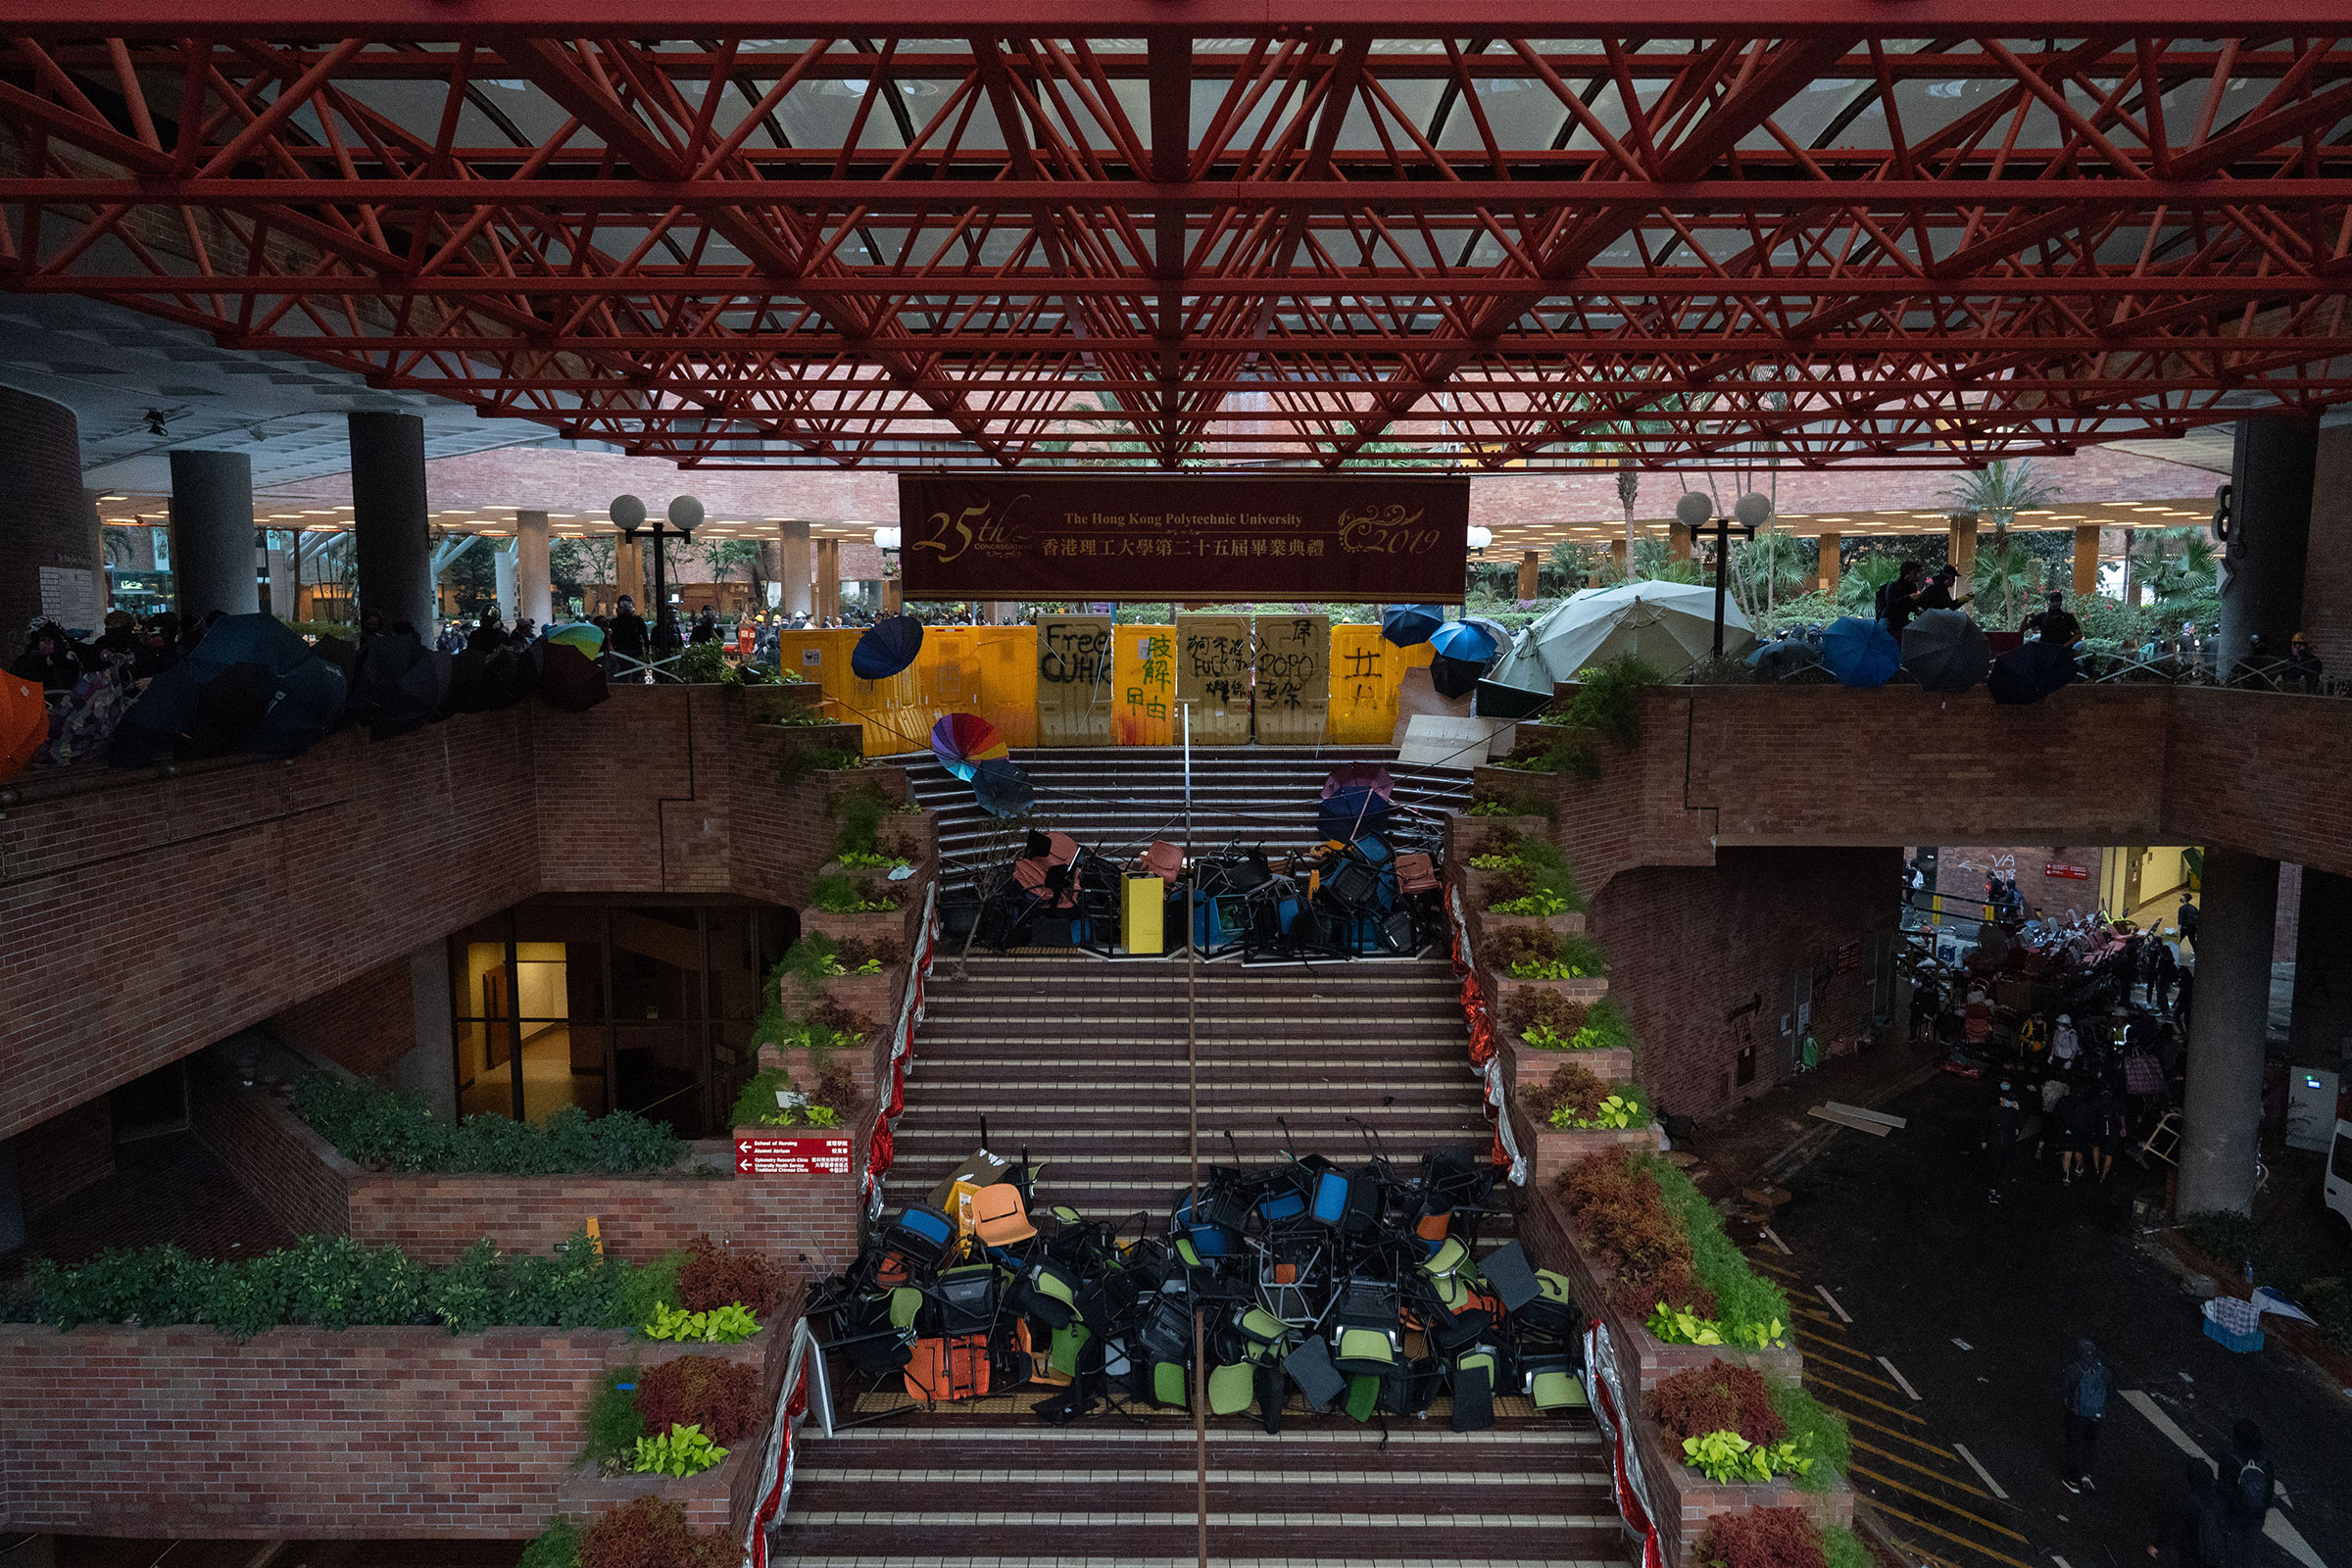 Polytechnic University's main atrium, fortified with umbrellas and barricades, Nov. 14.